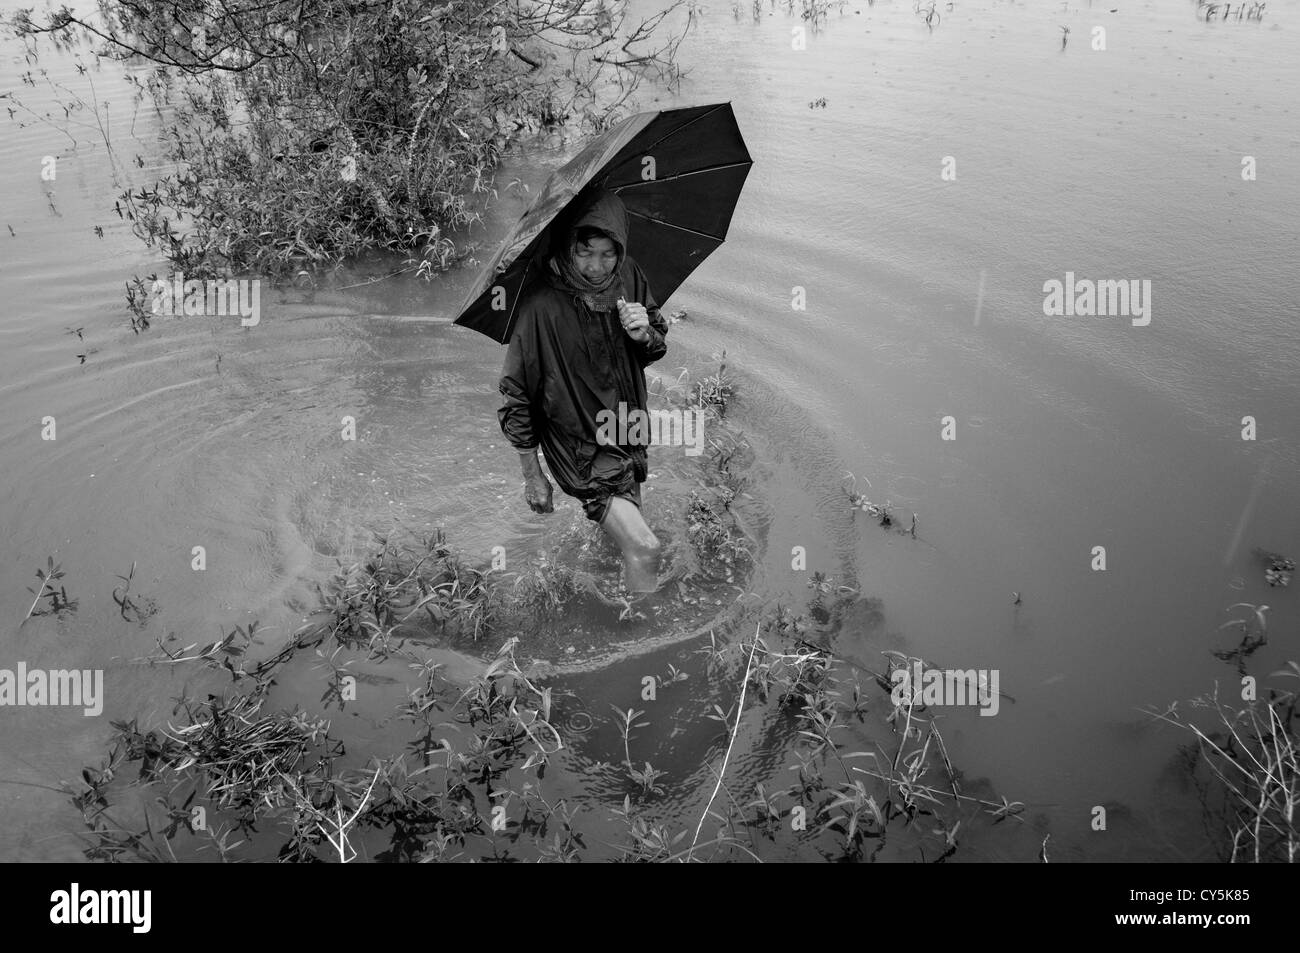 A woman walking with umbrella in a flooded rural area caused by Cyclone Nargis in the Republic of the Union of Myanmar - Stock Image